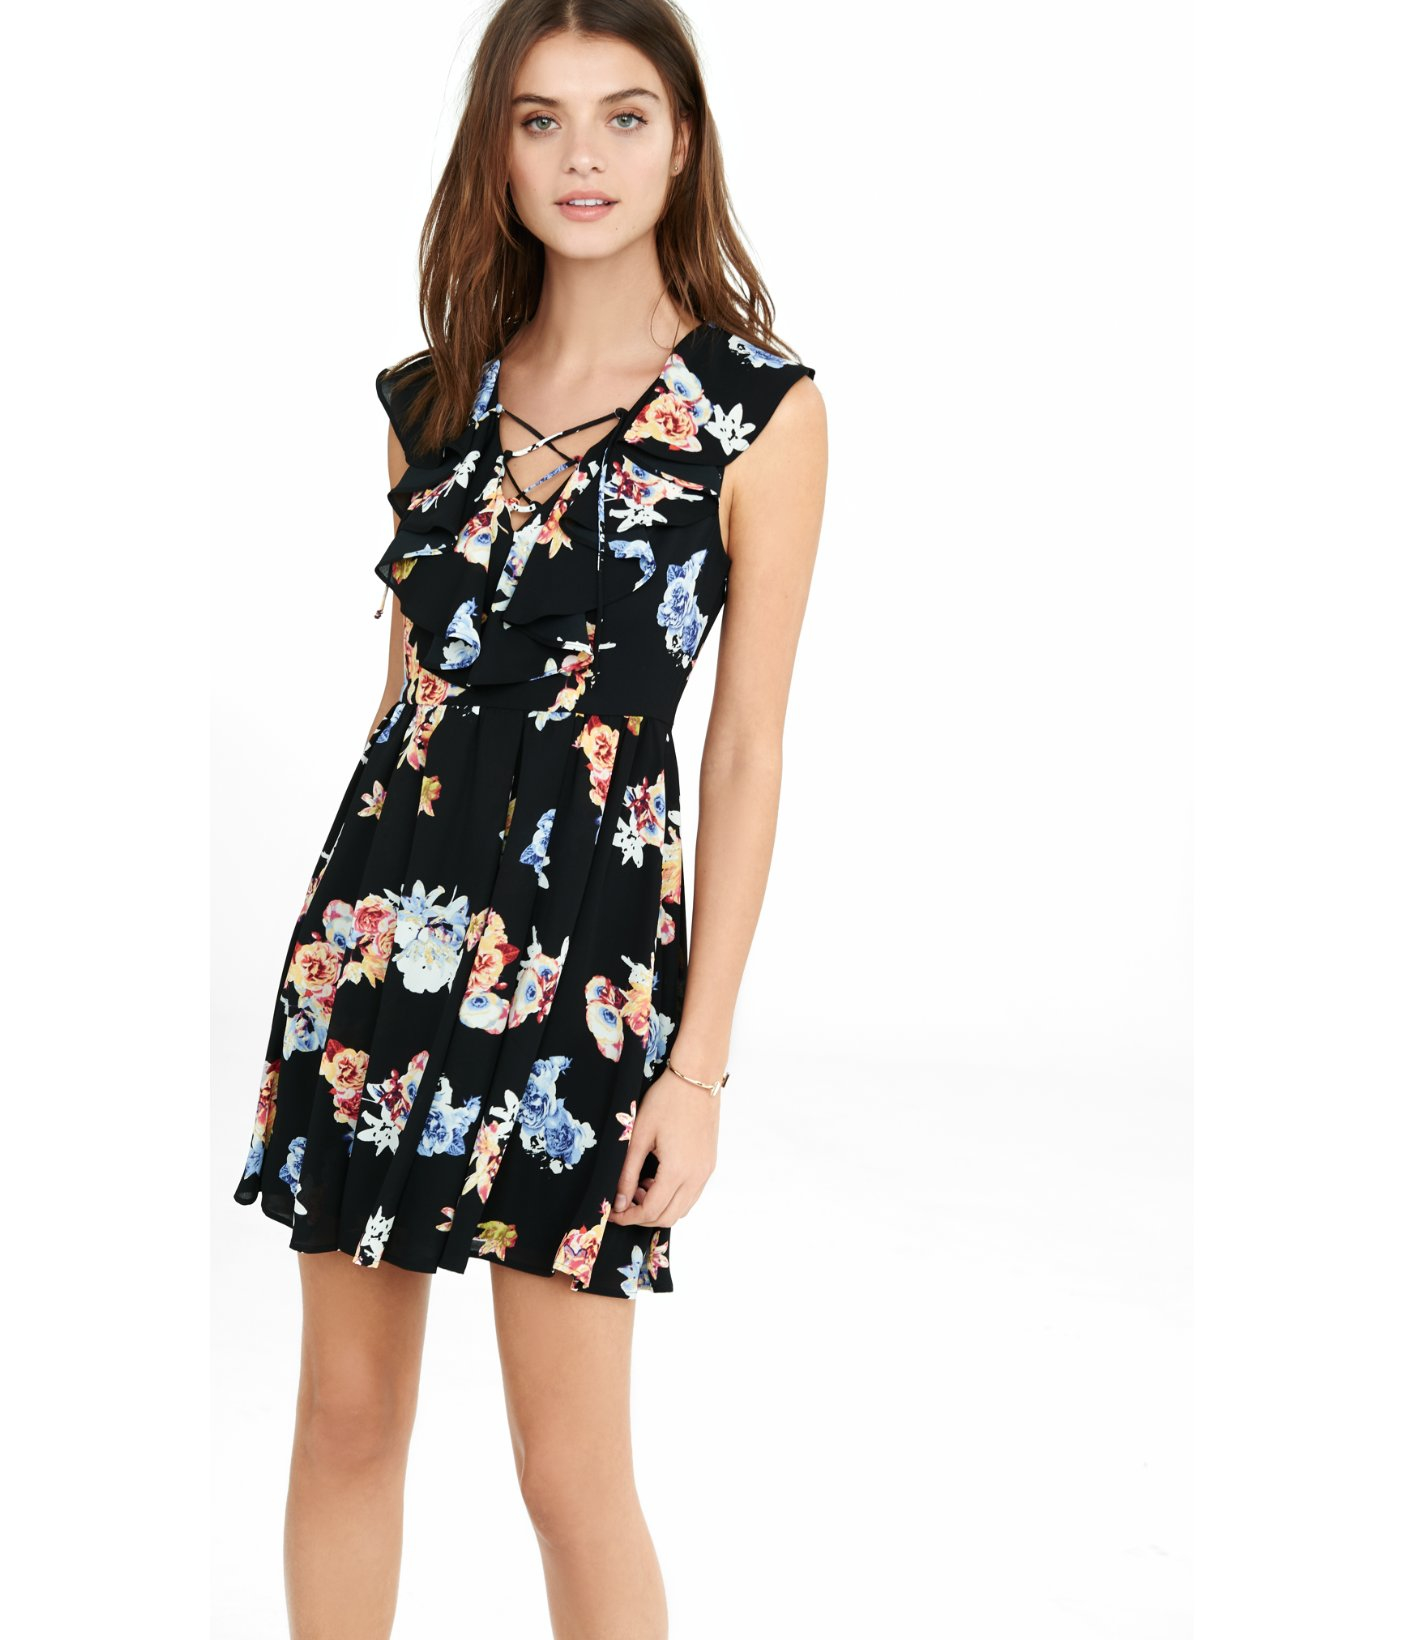 246bc18af4b5 Lyst - Express Floral Lace-up Ruffle Fit And Flare Dress